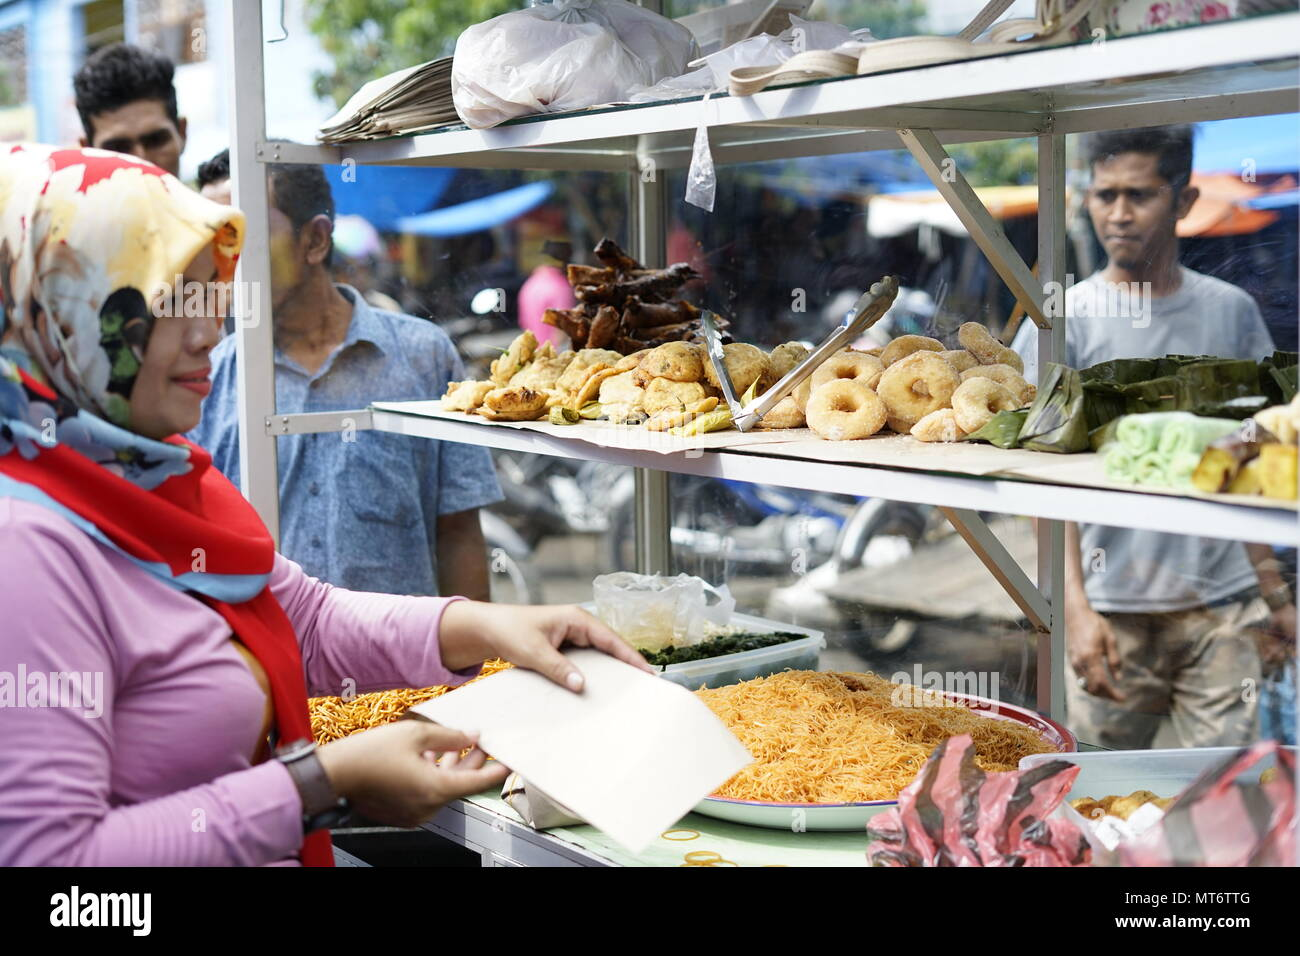 Muslim shoppers buying food from street vendor for breaking fast or iftar in Banda Aceh Stock Photo